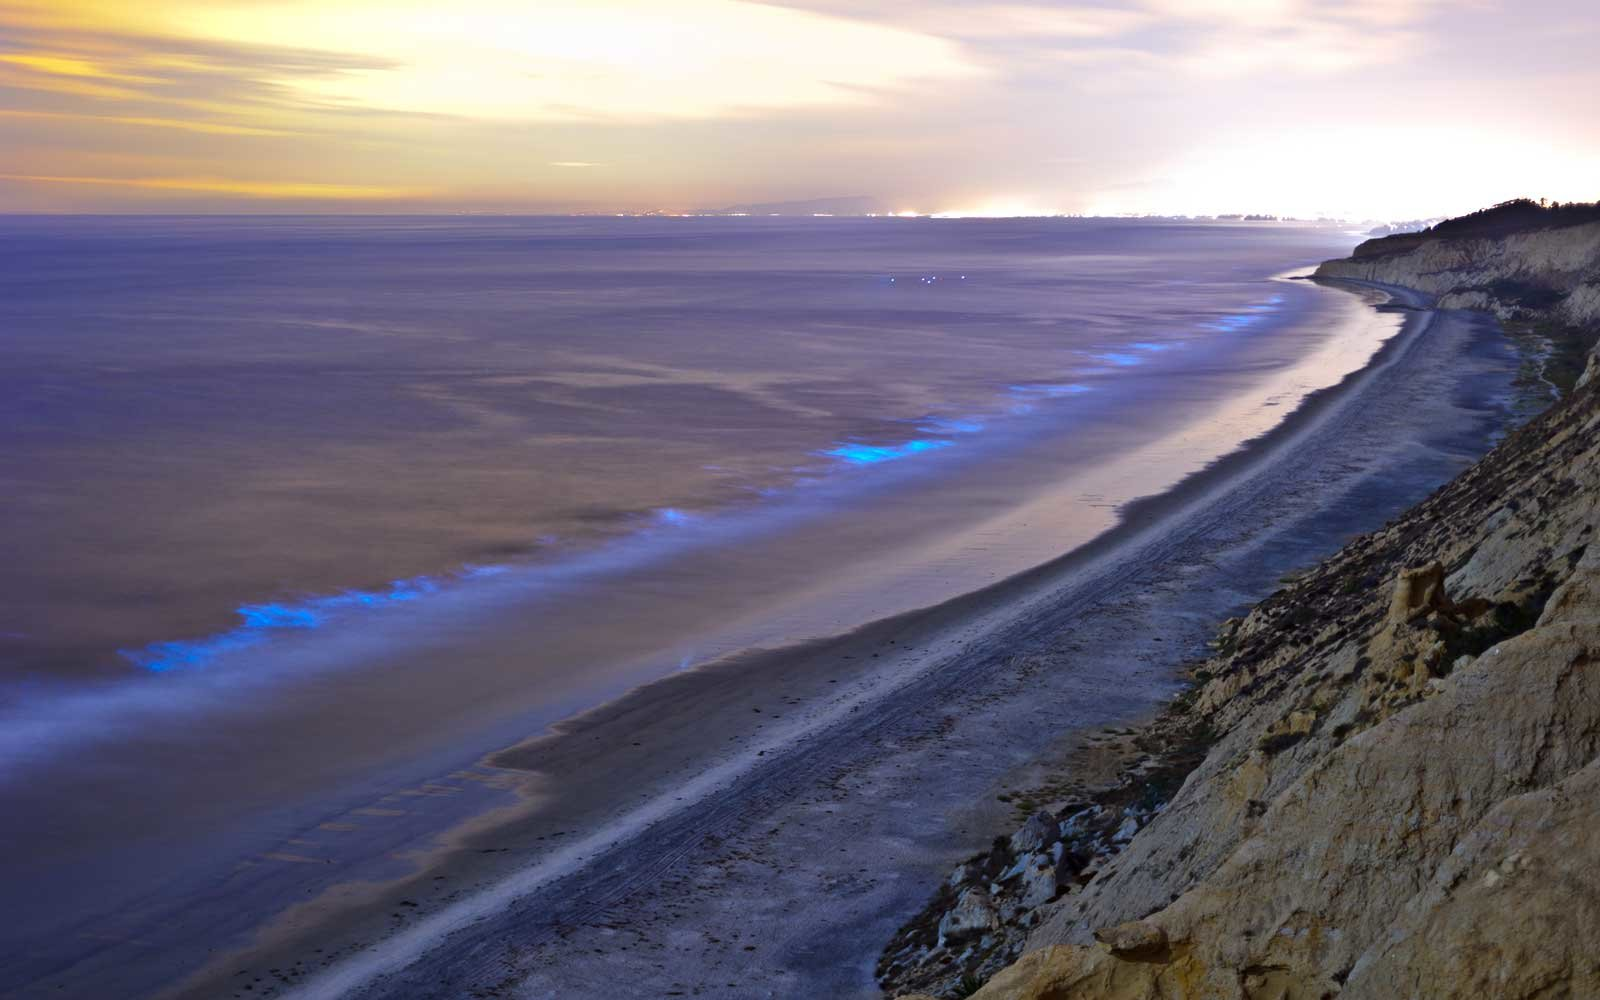 Red tide causing surf to glow in parts of California